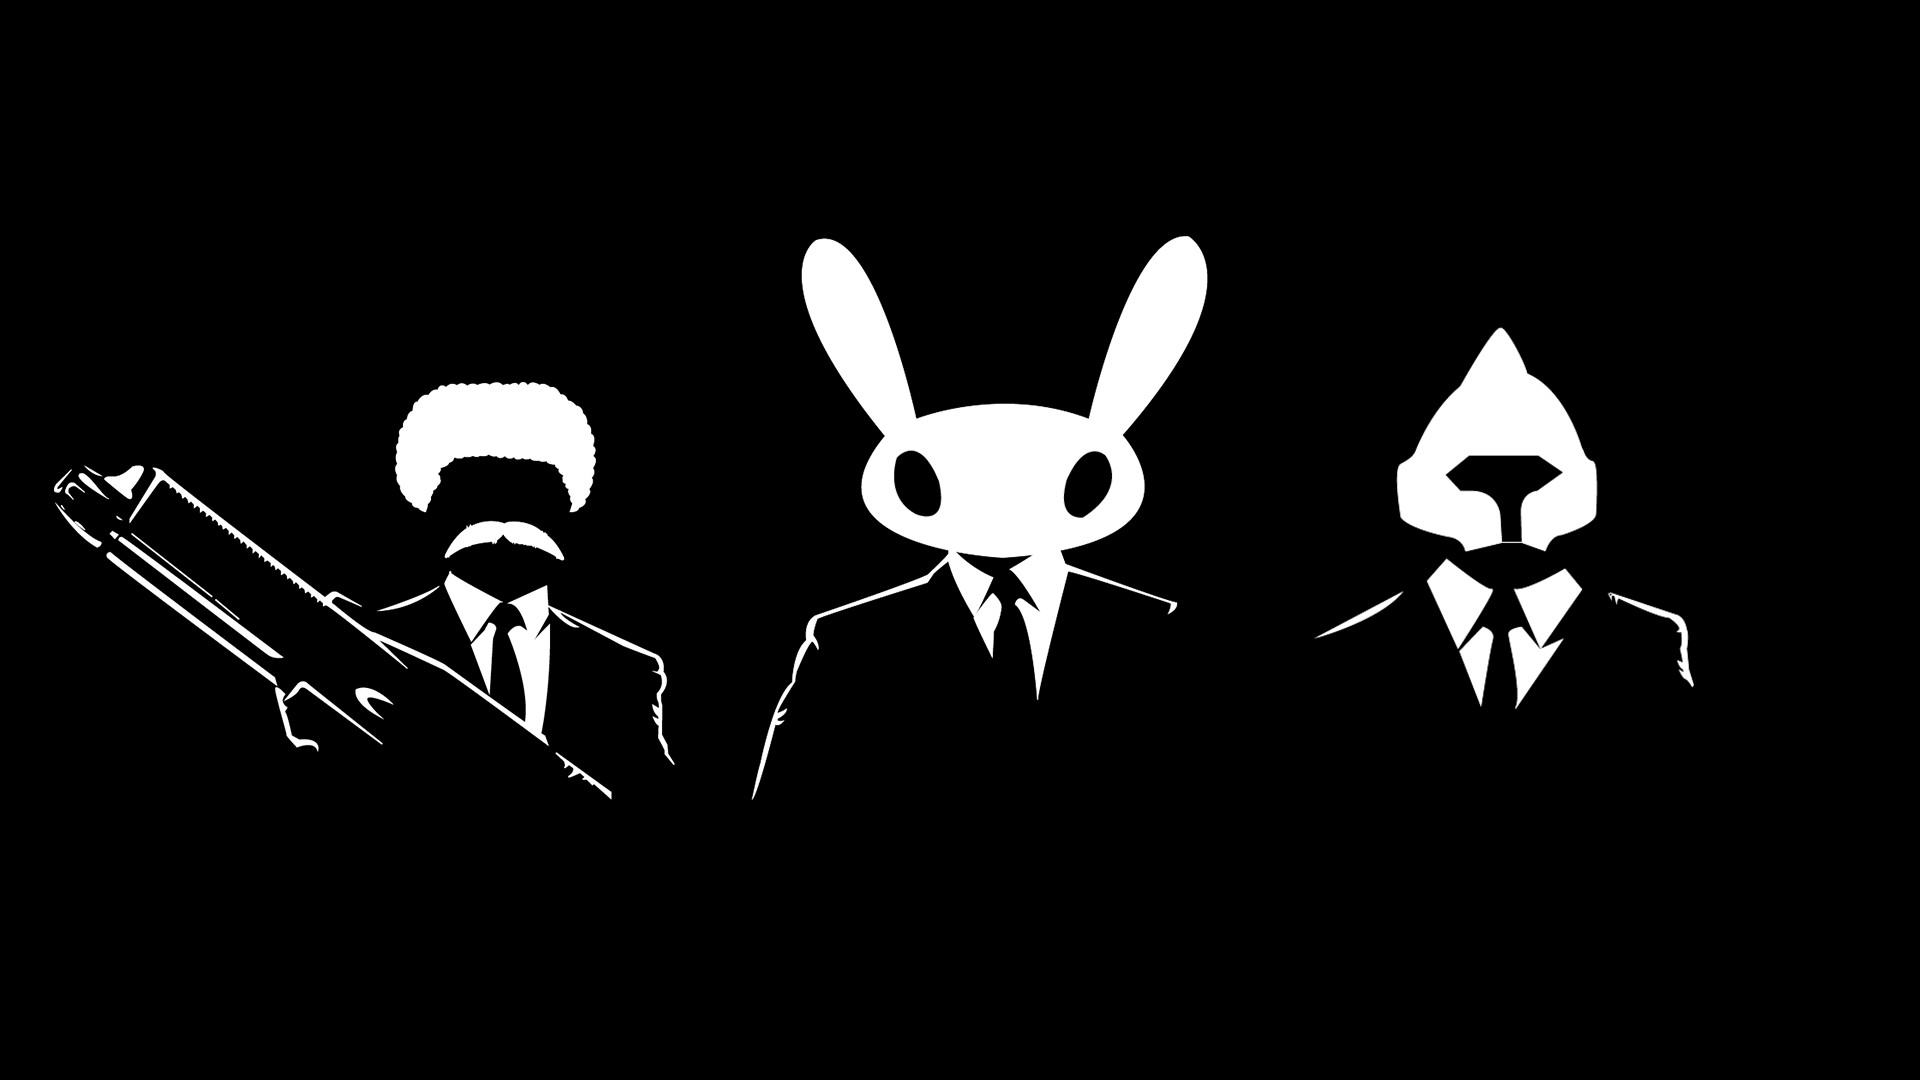 … Suit Wallpaper (HD) by RayBBITS